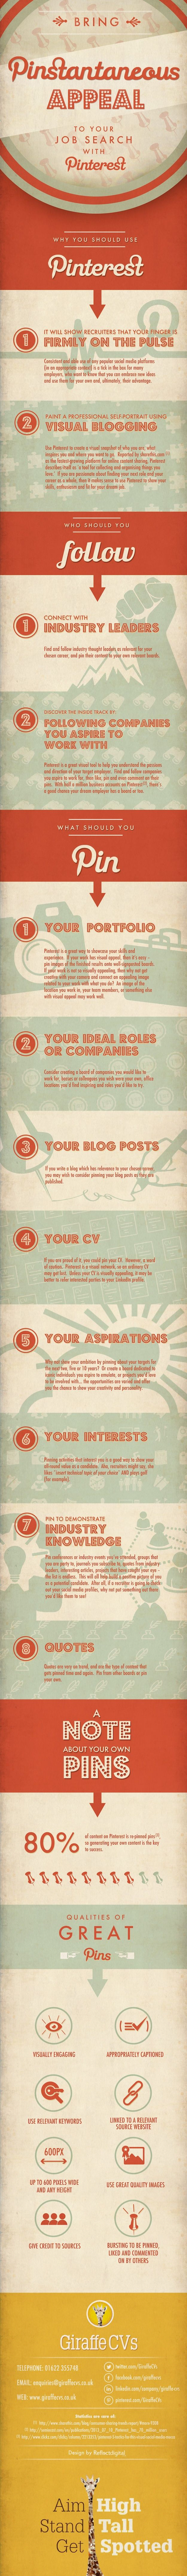 12 Strategic Ways to Use Pinterest in Job Search [INFOGRAPHIC]